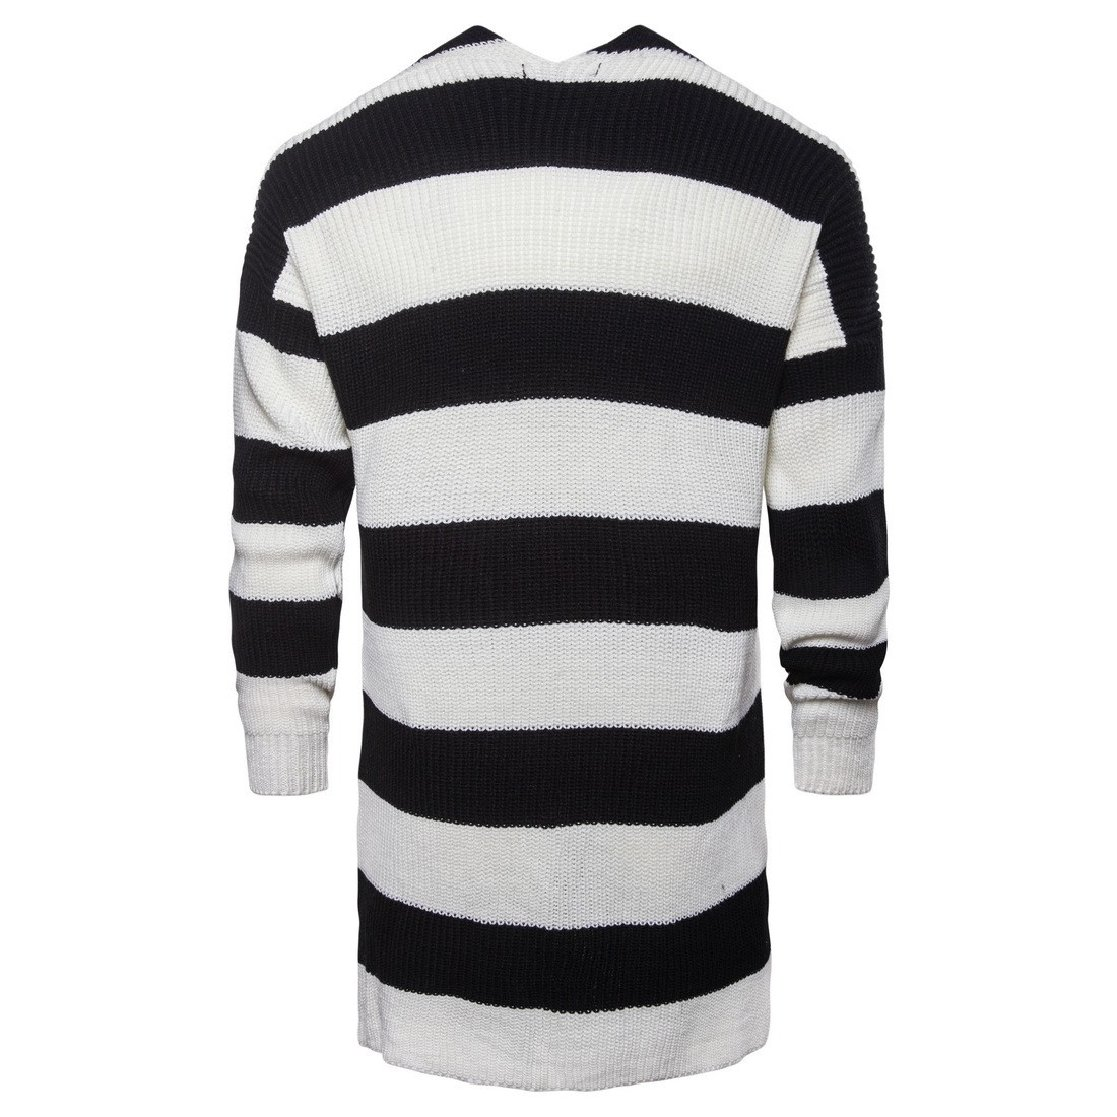 CrazyDayMen Casual Color Conjoin Black and White Stripes Knitting Sweaters